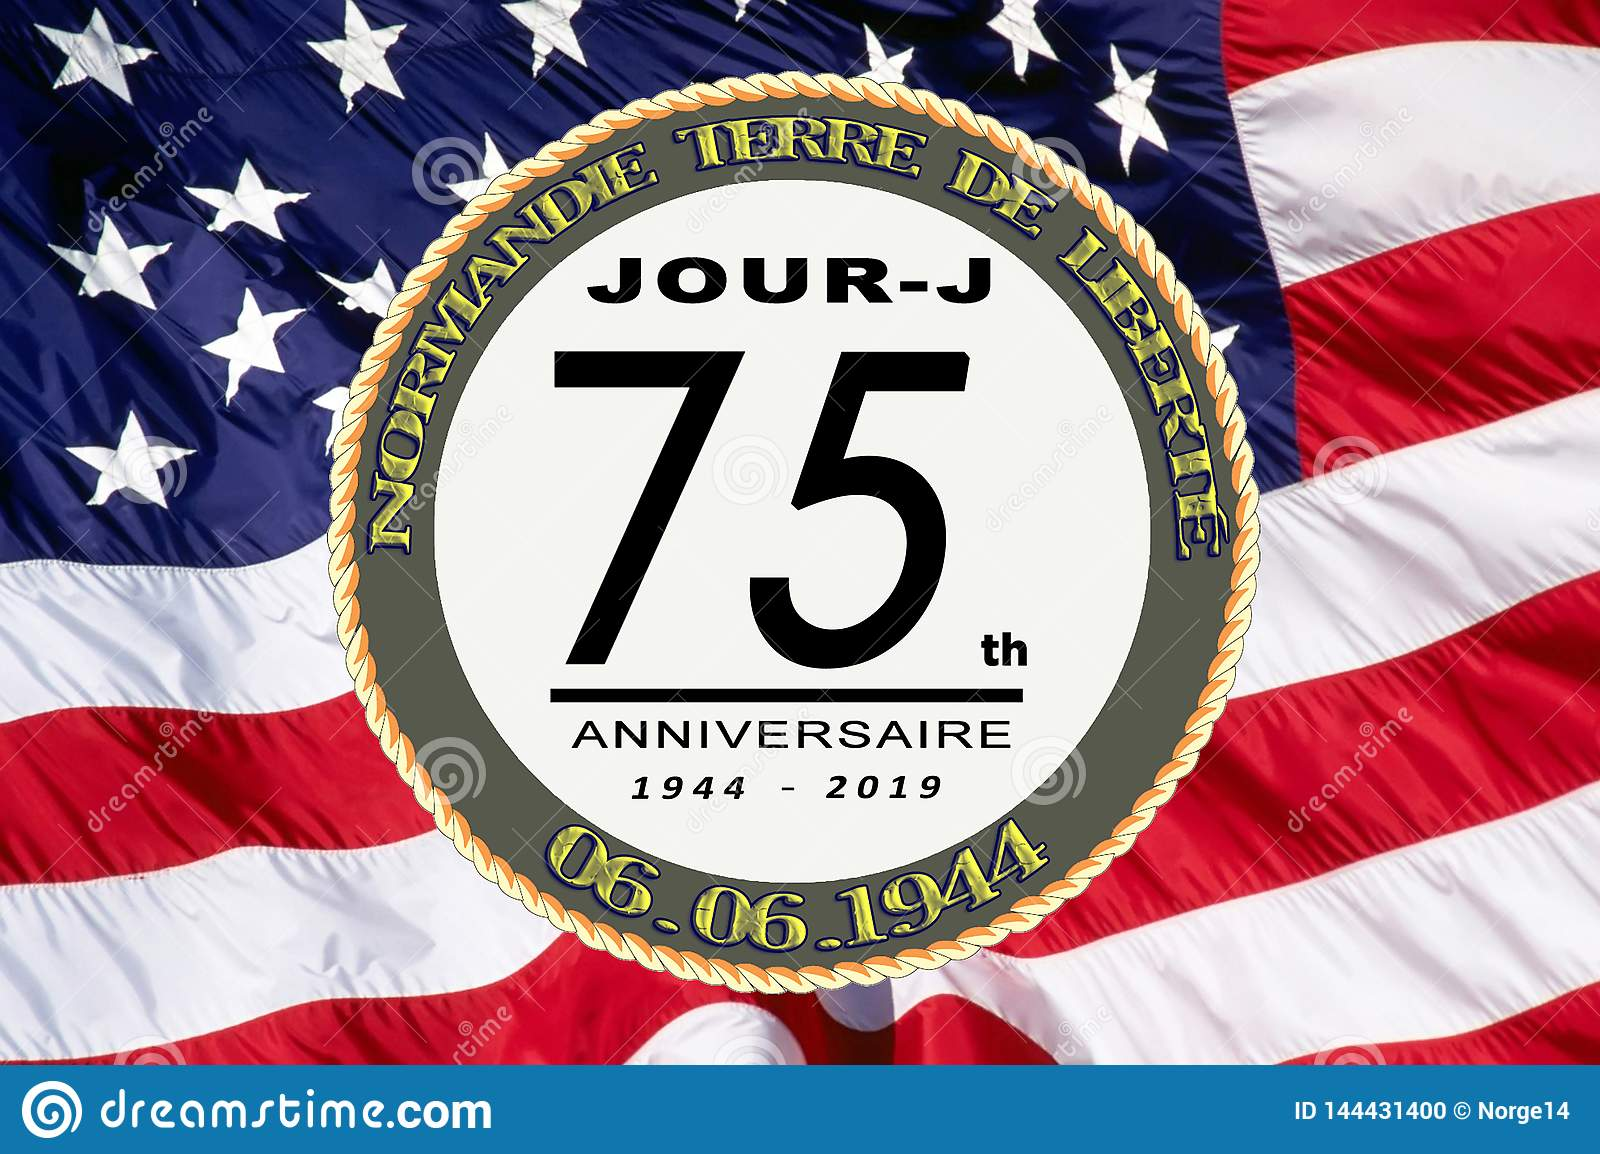 France D Day 75th Anniversary Stock Photo Image Of Invasion Background 144431400